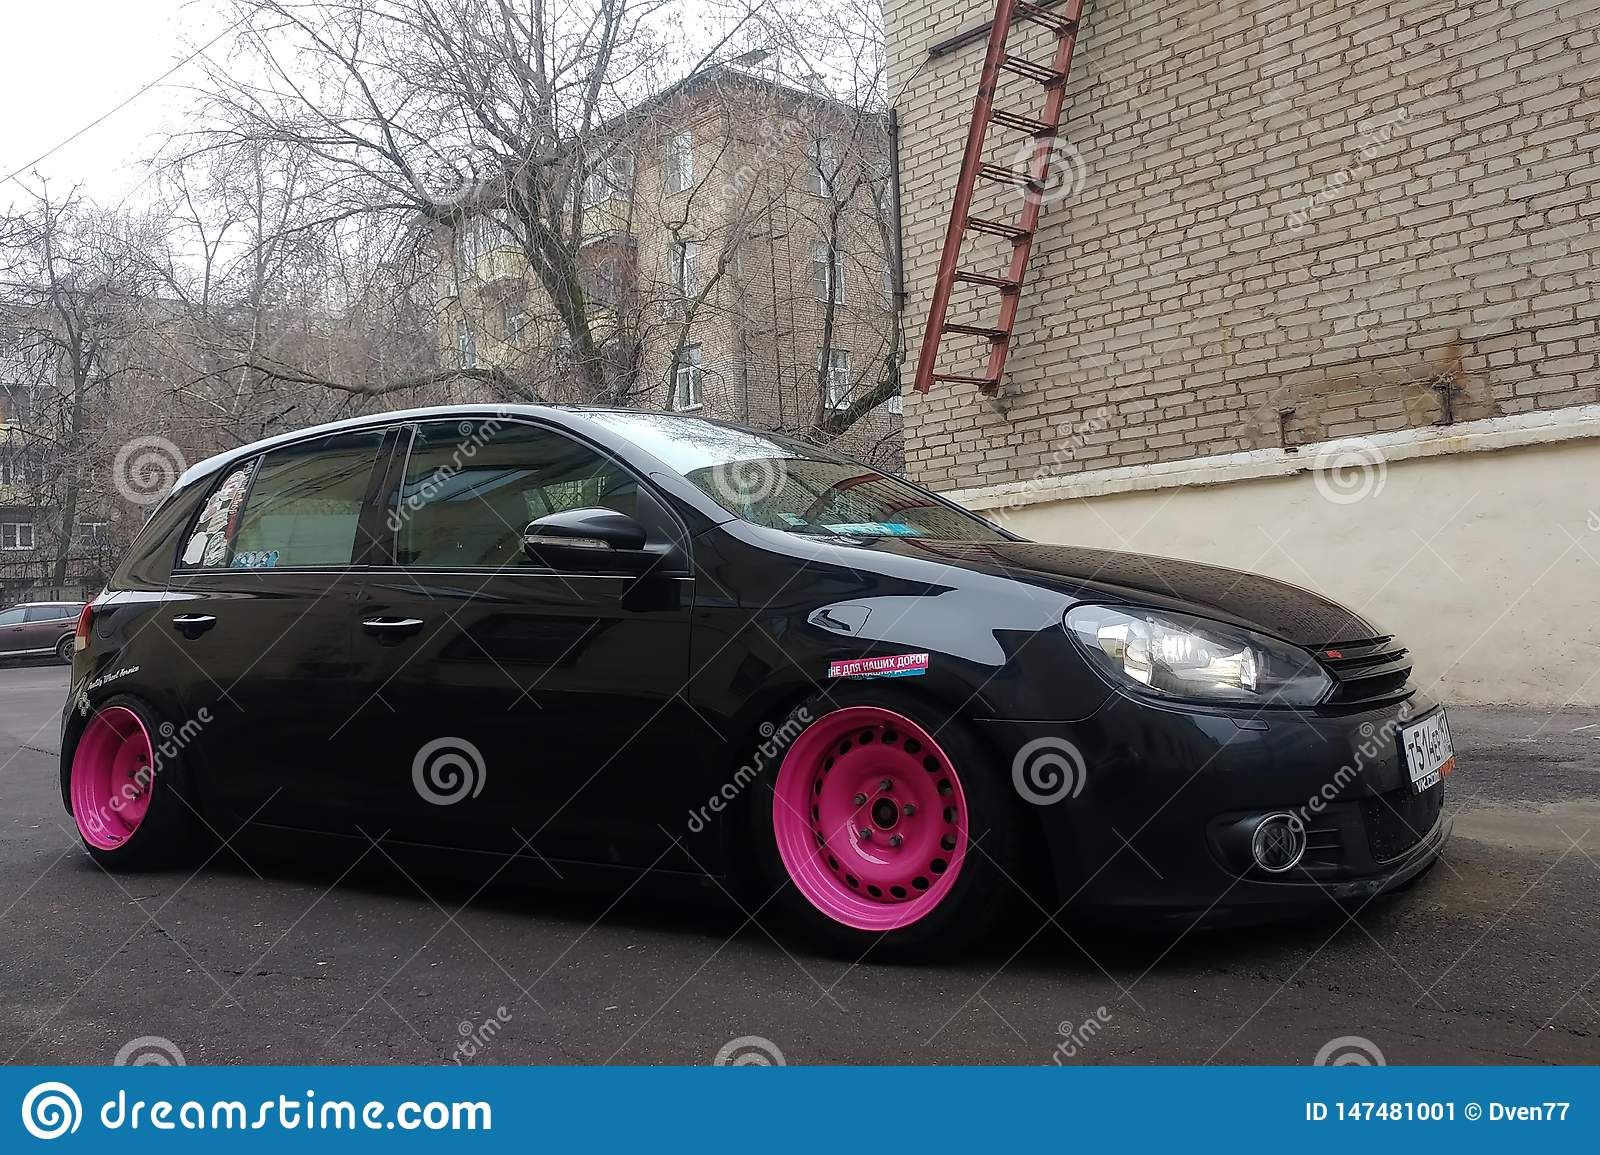 Moscow Russia May 08 2019 A Black Tuned And Understated Volkswagen Golf 6 With Bright Pink Handmade Custom Wheels Stands On Editorial Photo Image Of Modified Volkswagen 147481001